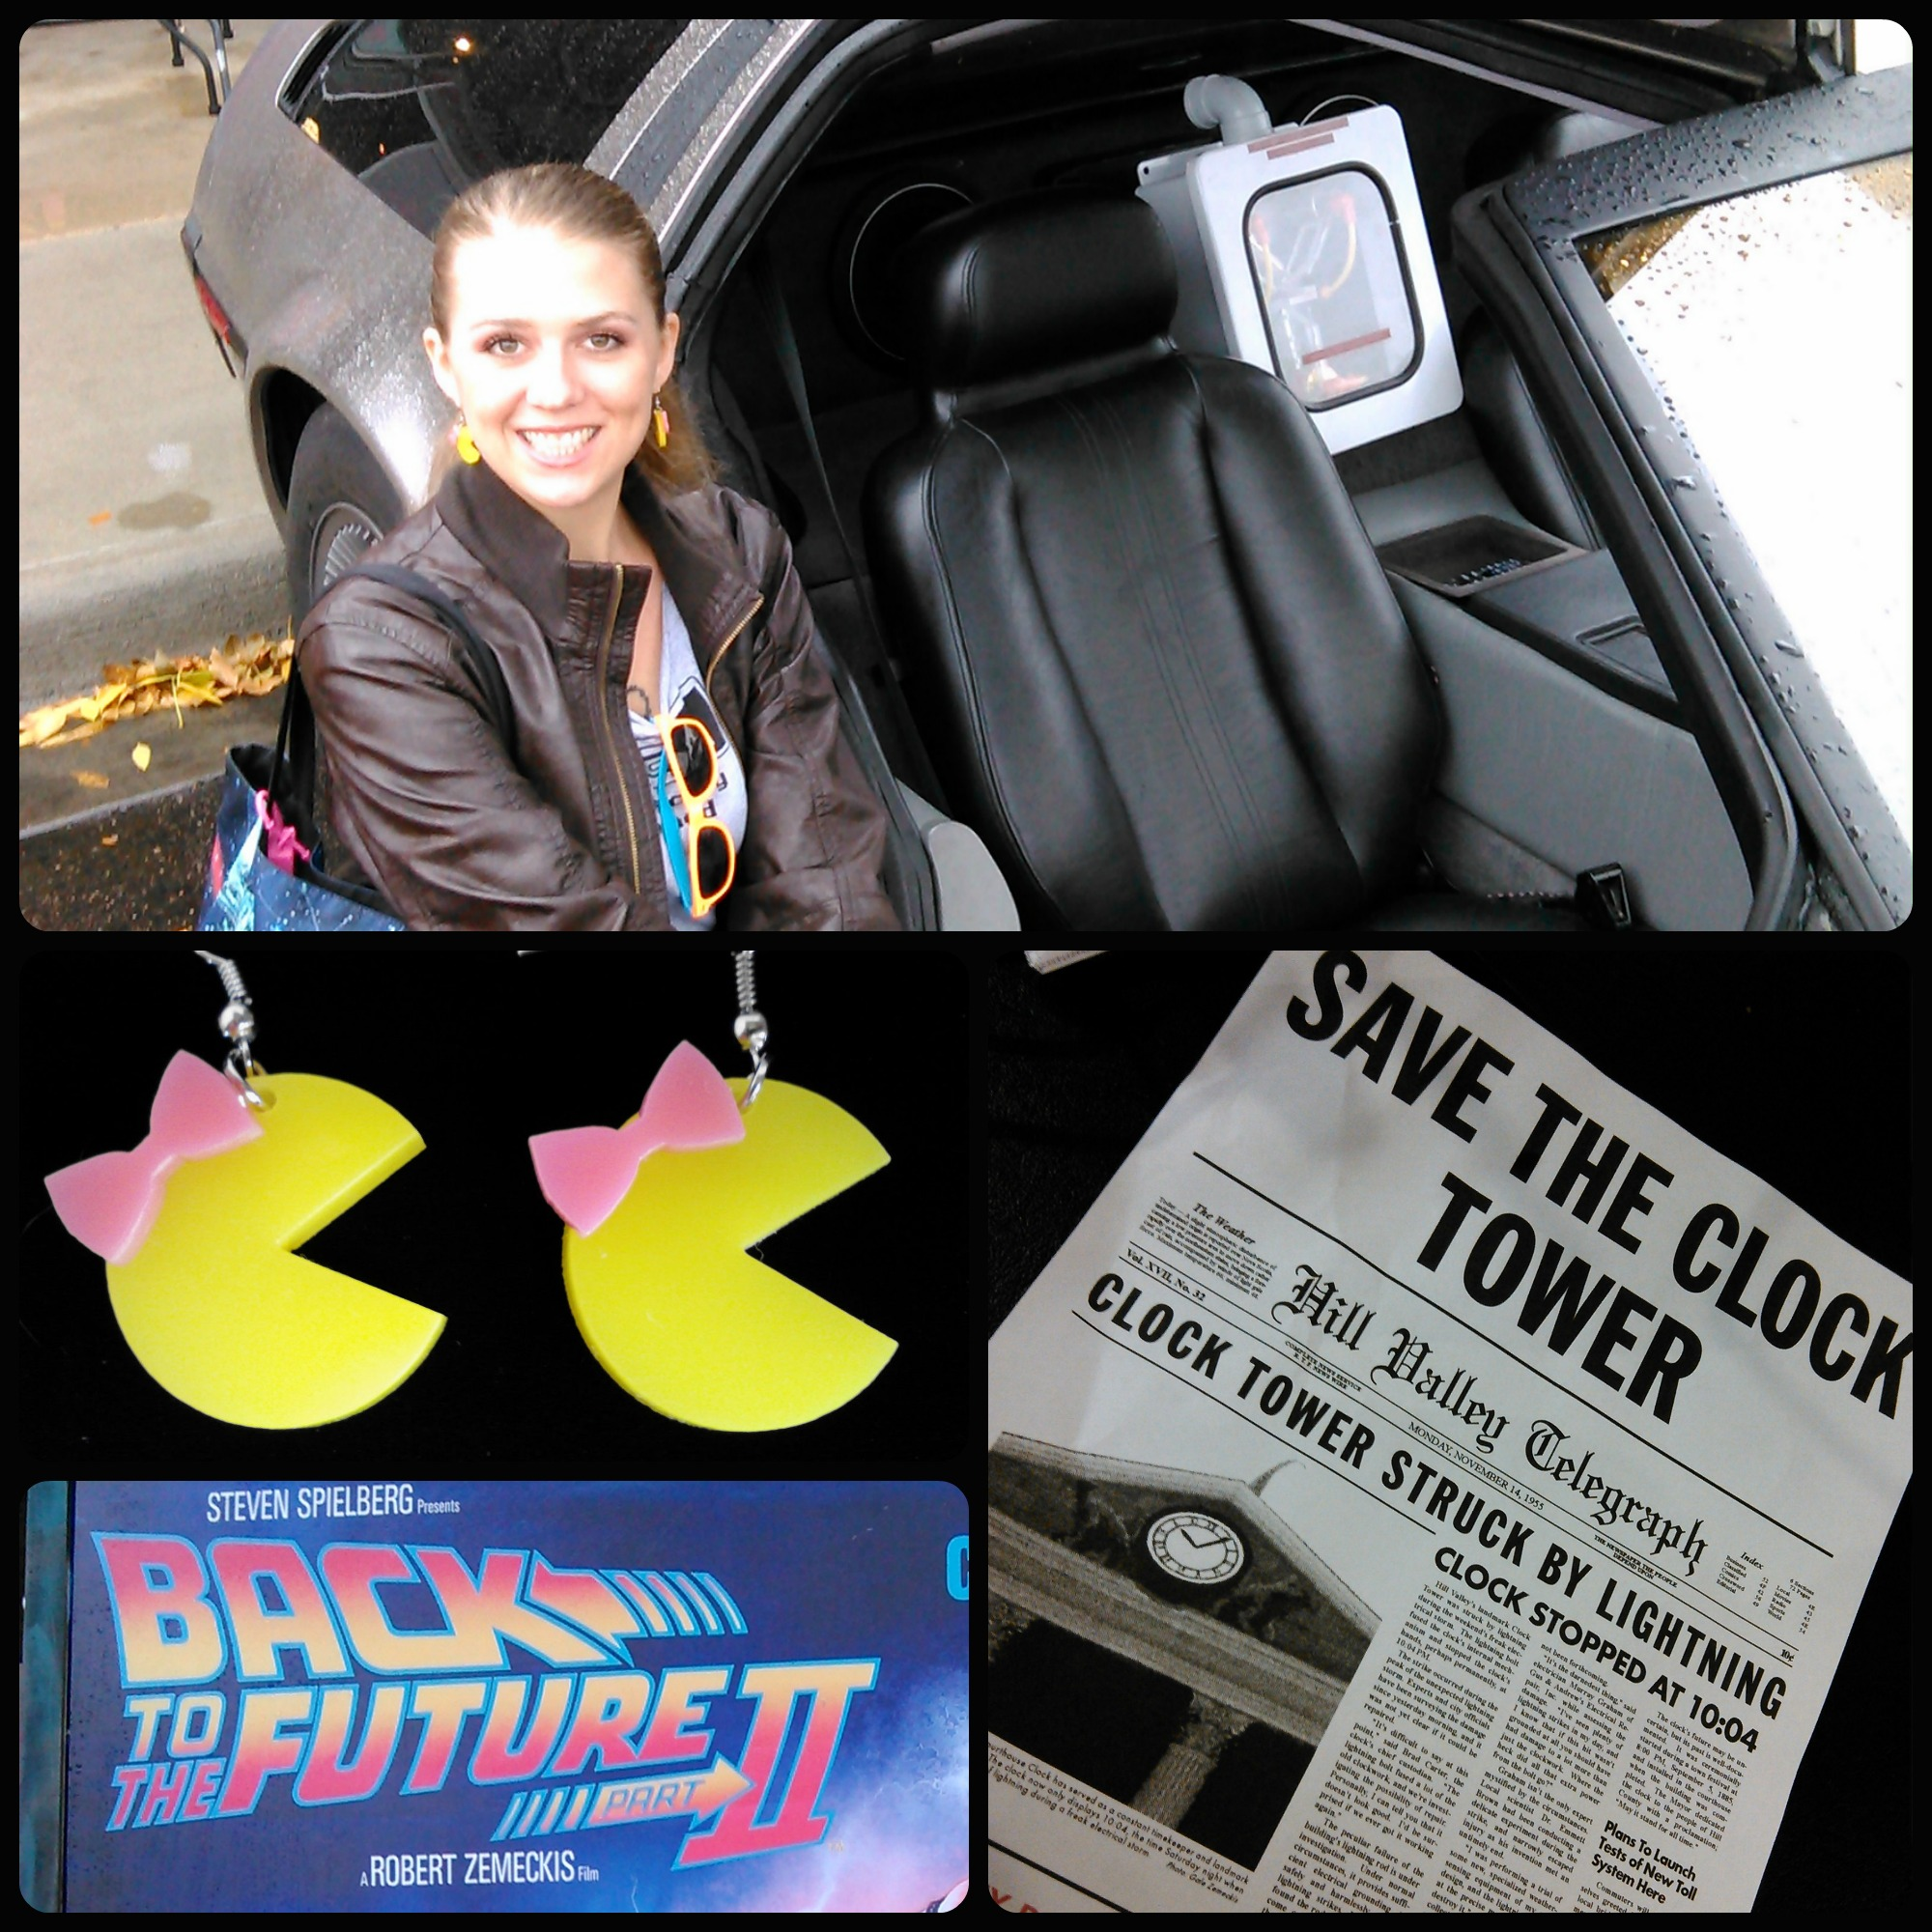 The Future is Now! (BTTF Day!)